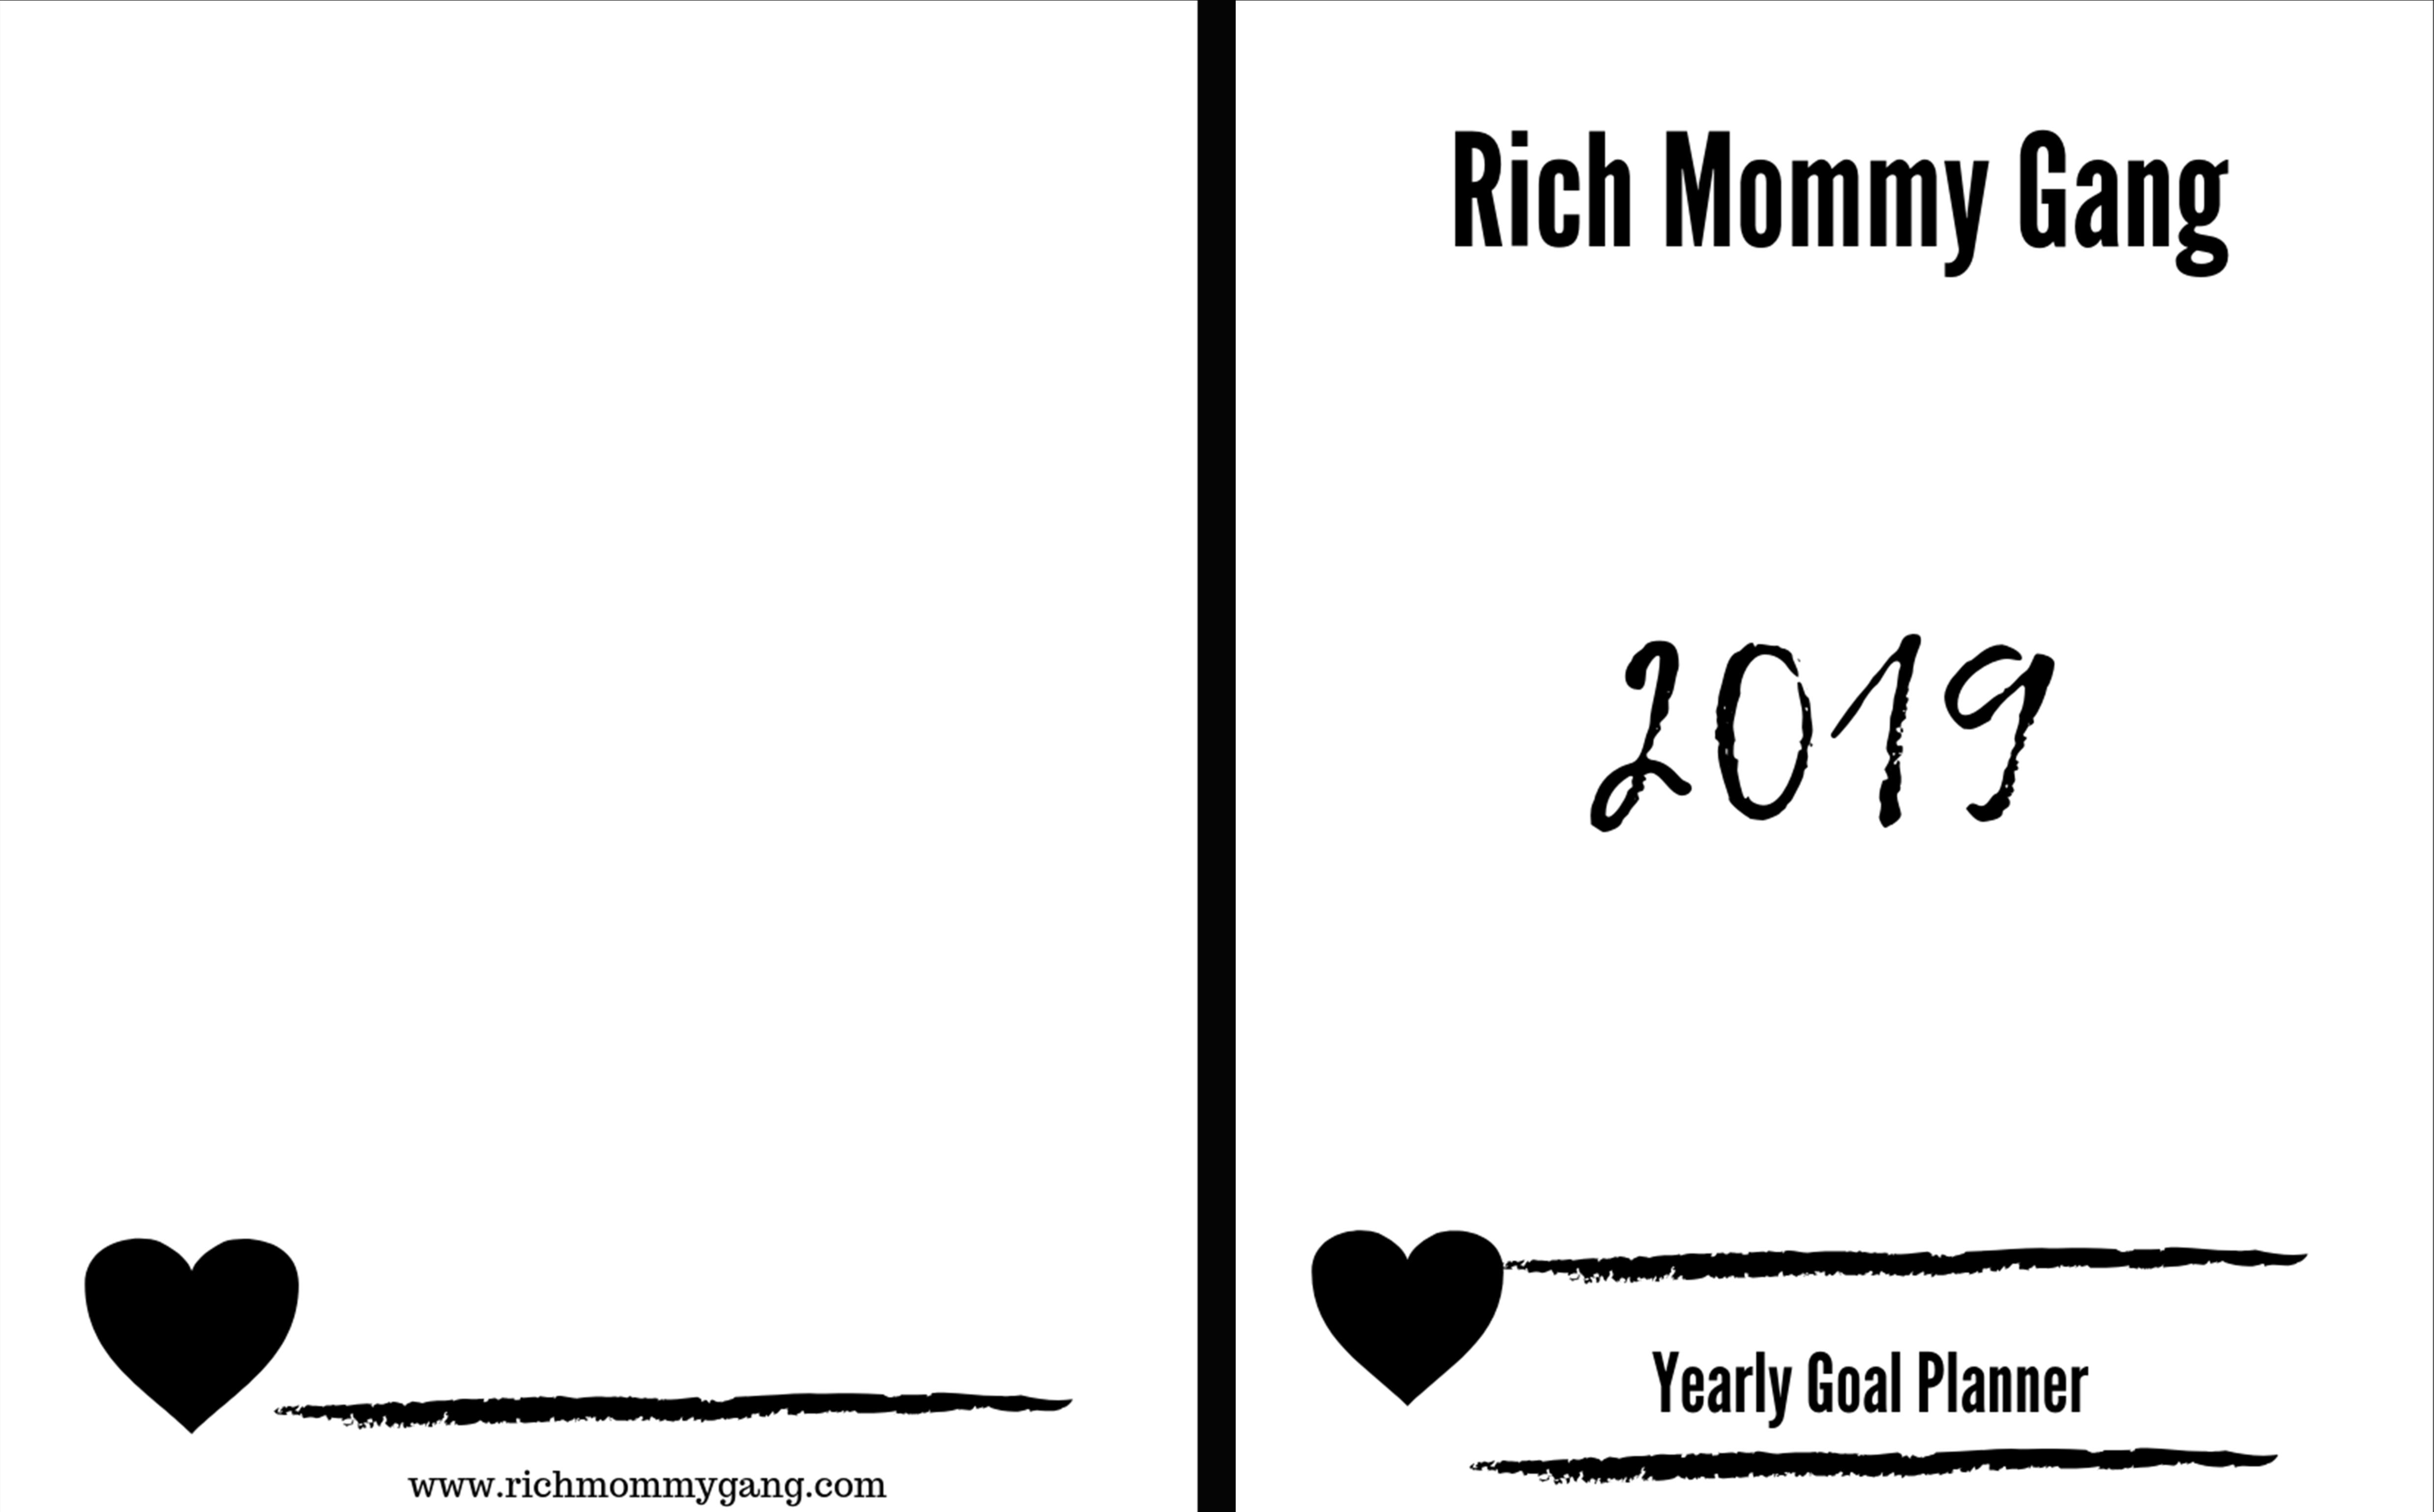 2019 Yearly Goal Planner cover image